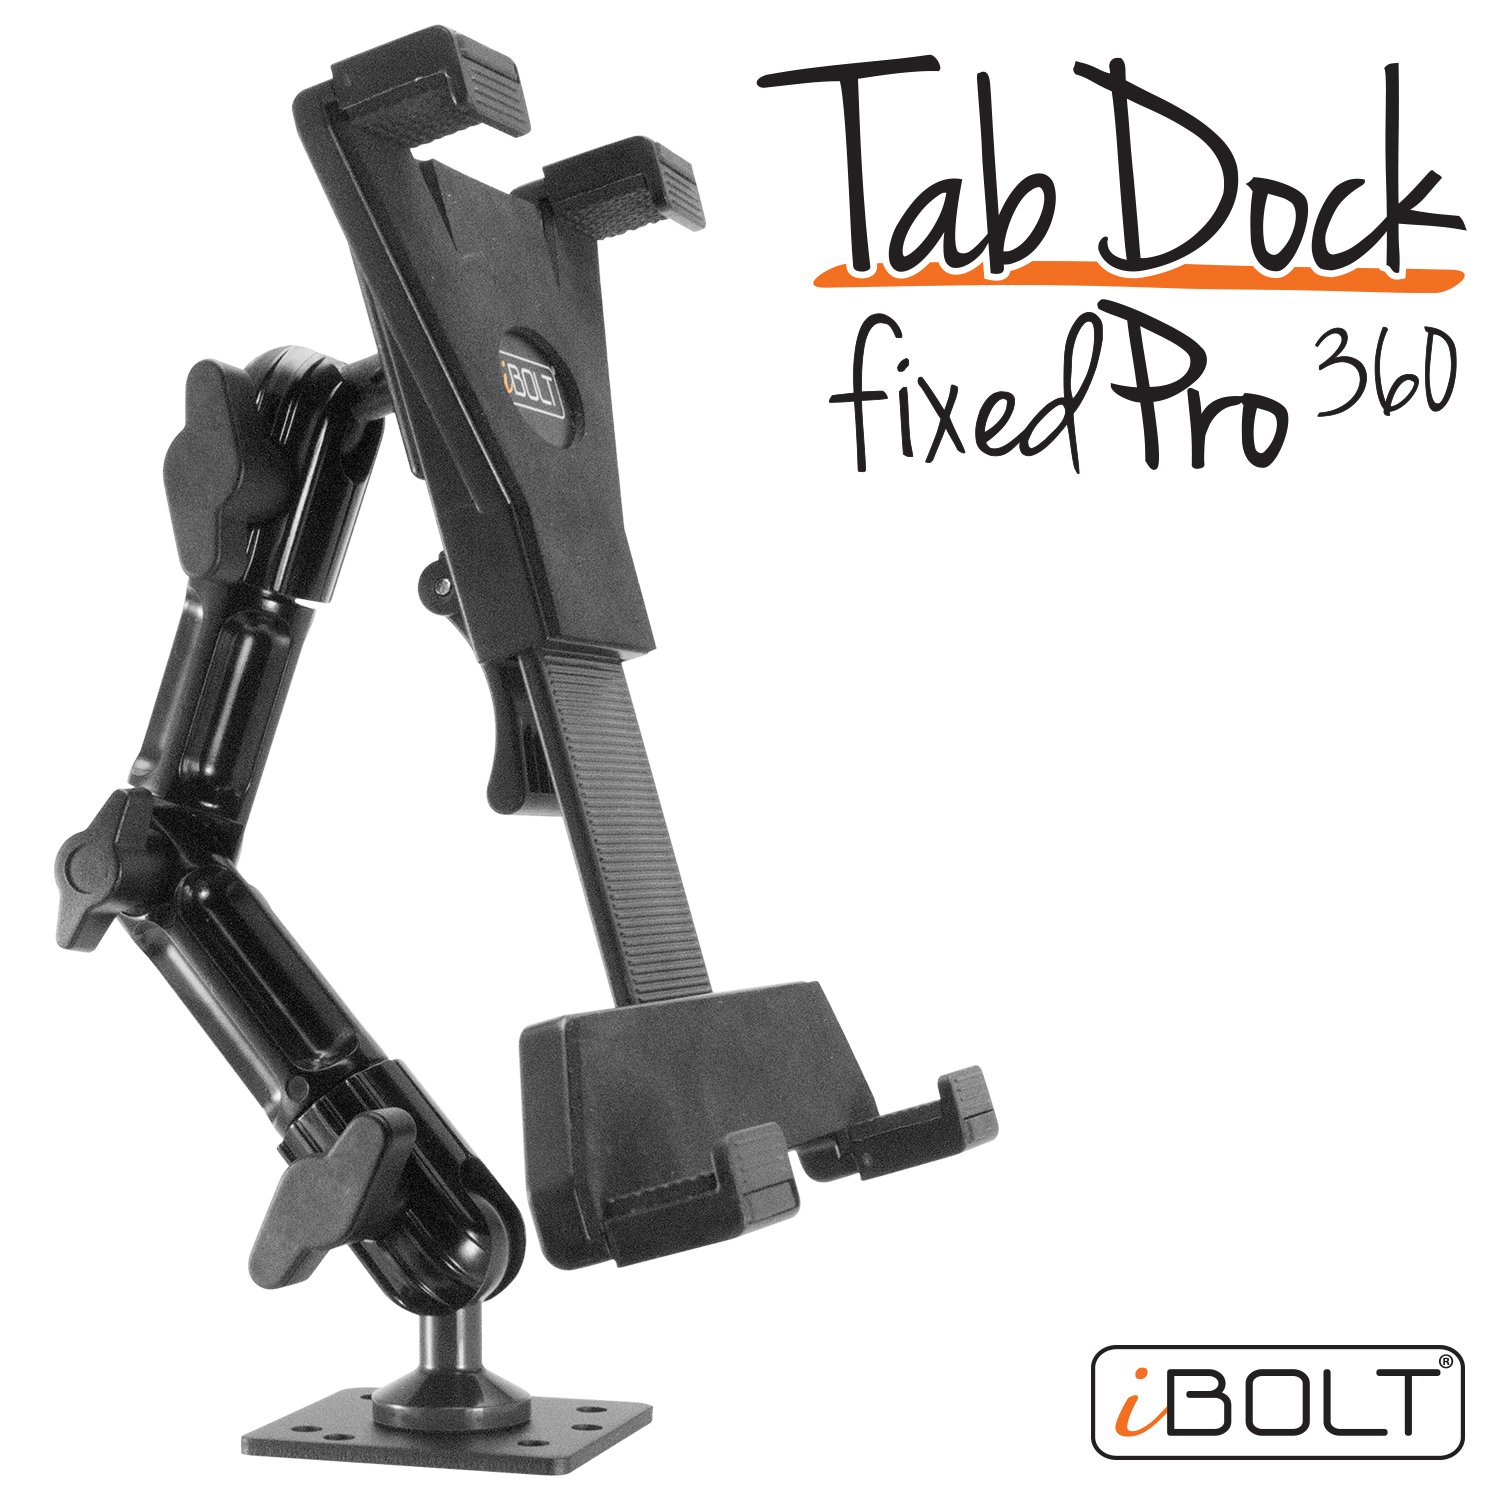 "etc iPad, Nexus, Samsung Tab iBOLT TabDock FixedPro 360 -Heavy Duty Metal 8/"" Multi-Angle Drill Base Mount for All 7-10 Tablets Businesses IBBZ-33768 Countertops : Great for Homes for Desks Tables"